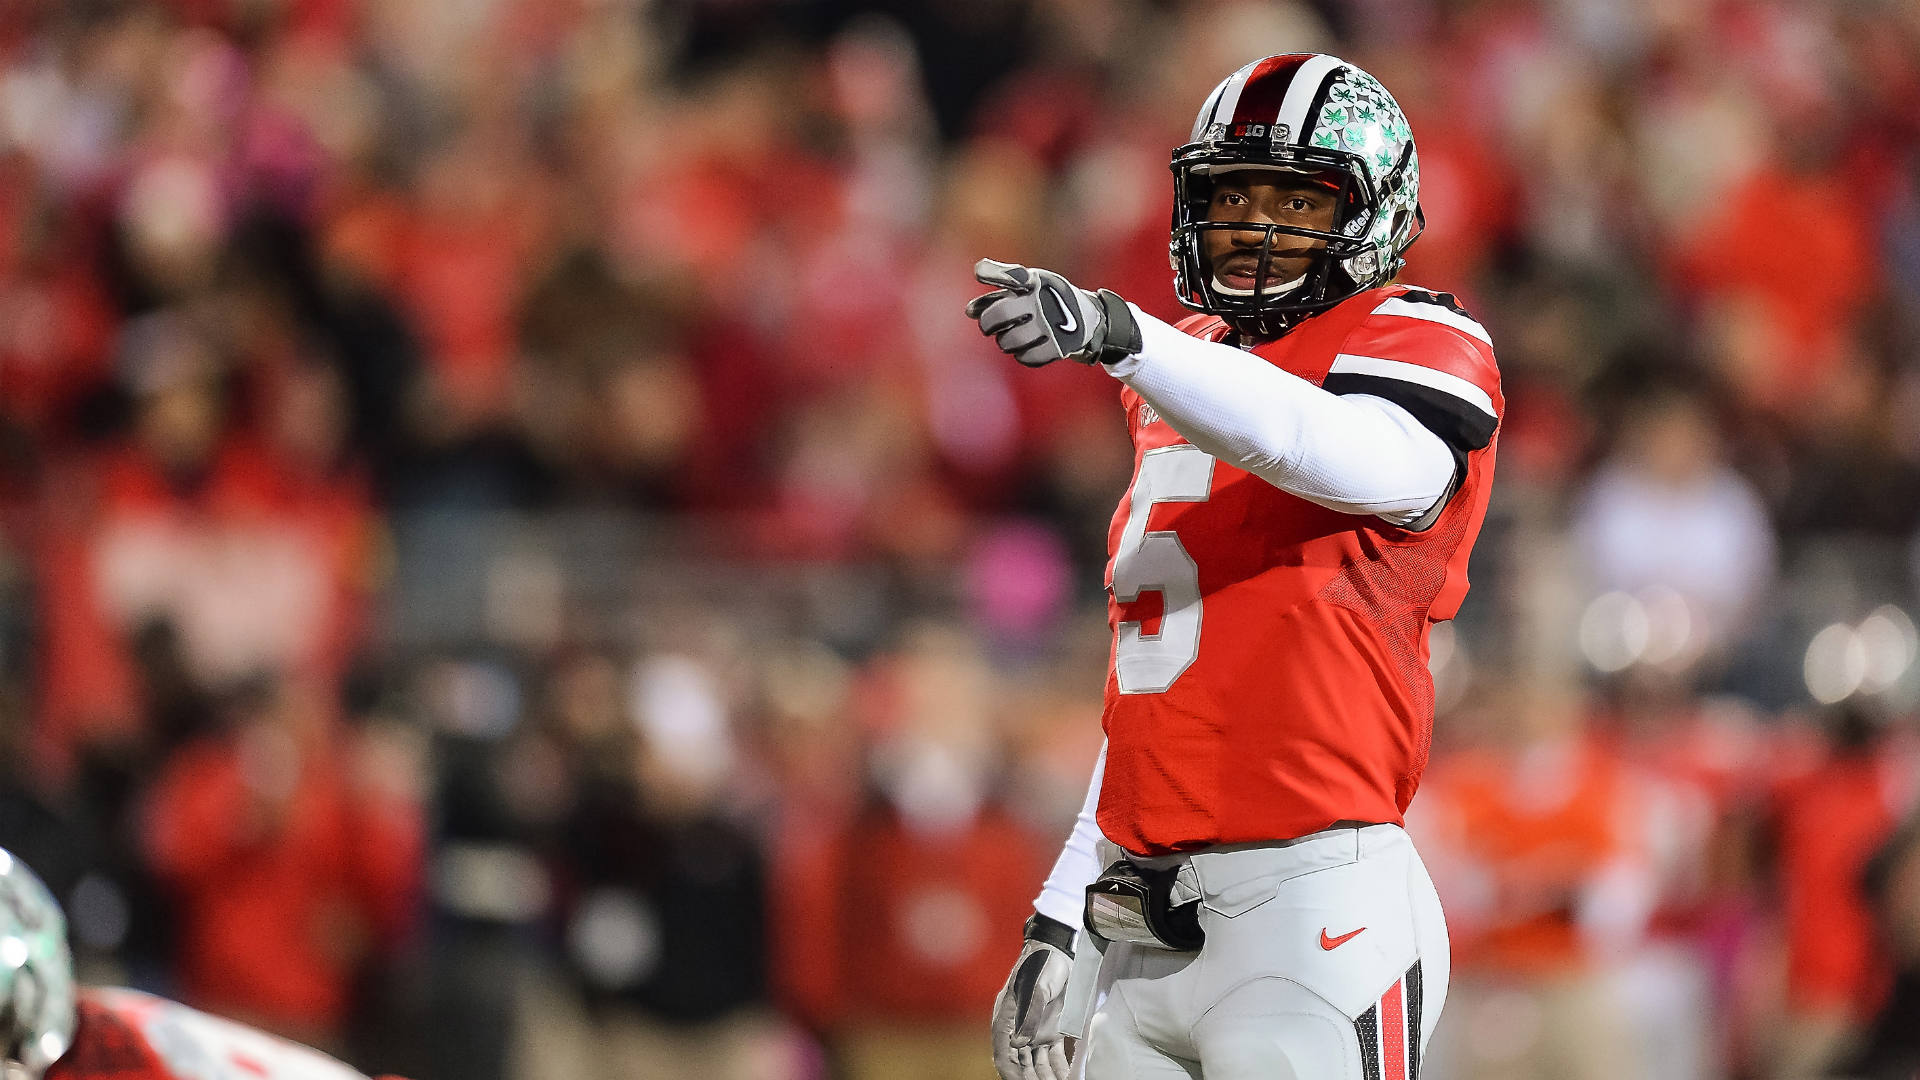 Urban Meyer says Braxton Miller returning, competing for starting QB